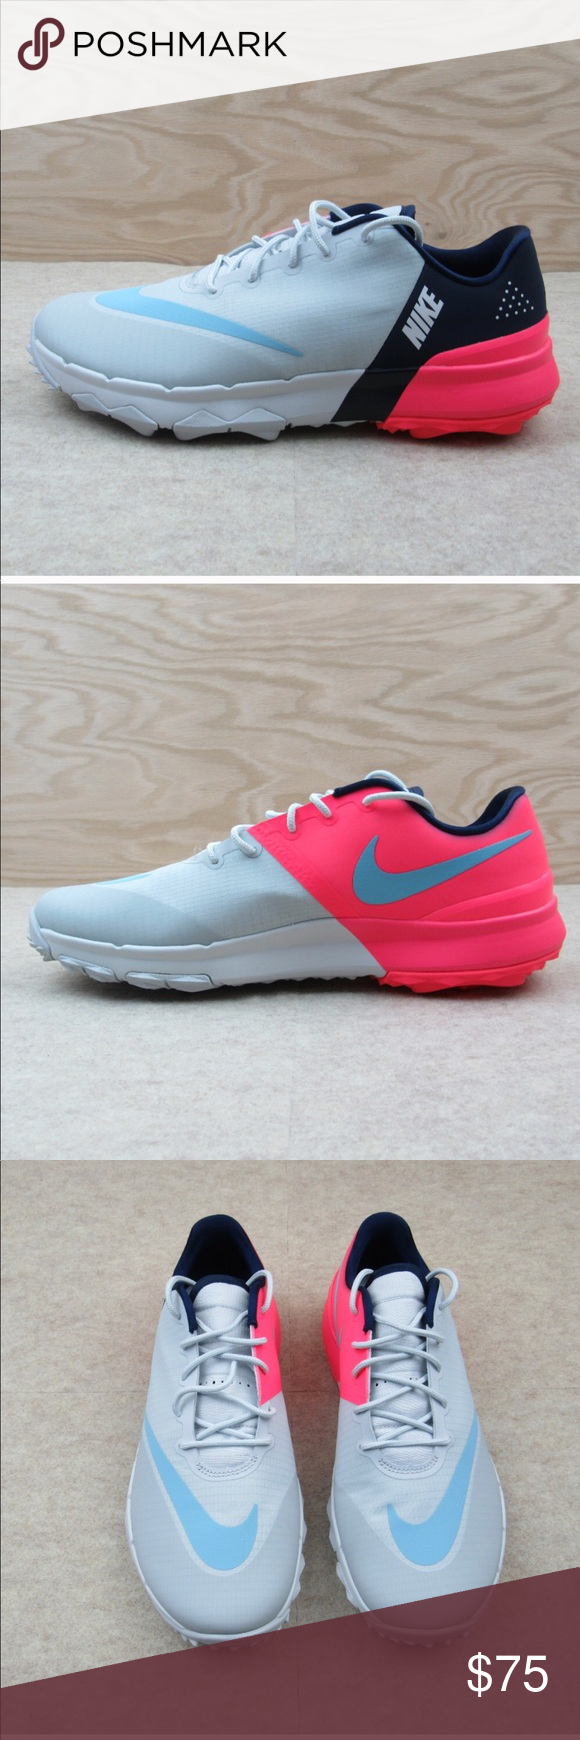 cd3e6f7fb738 Nike FI Flex Golf shoes size 9 women s Nike FI Flex Golf shoes Style 849973-001  Women s size 9 Brand new without box Nike Shoes Athletic Shoes